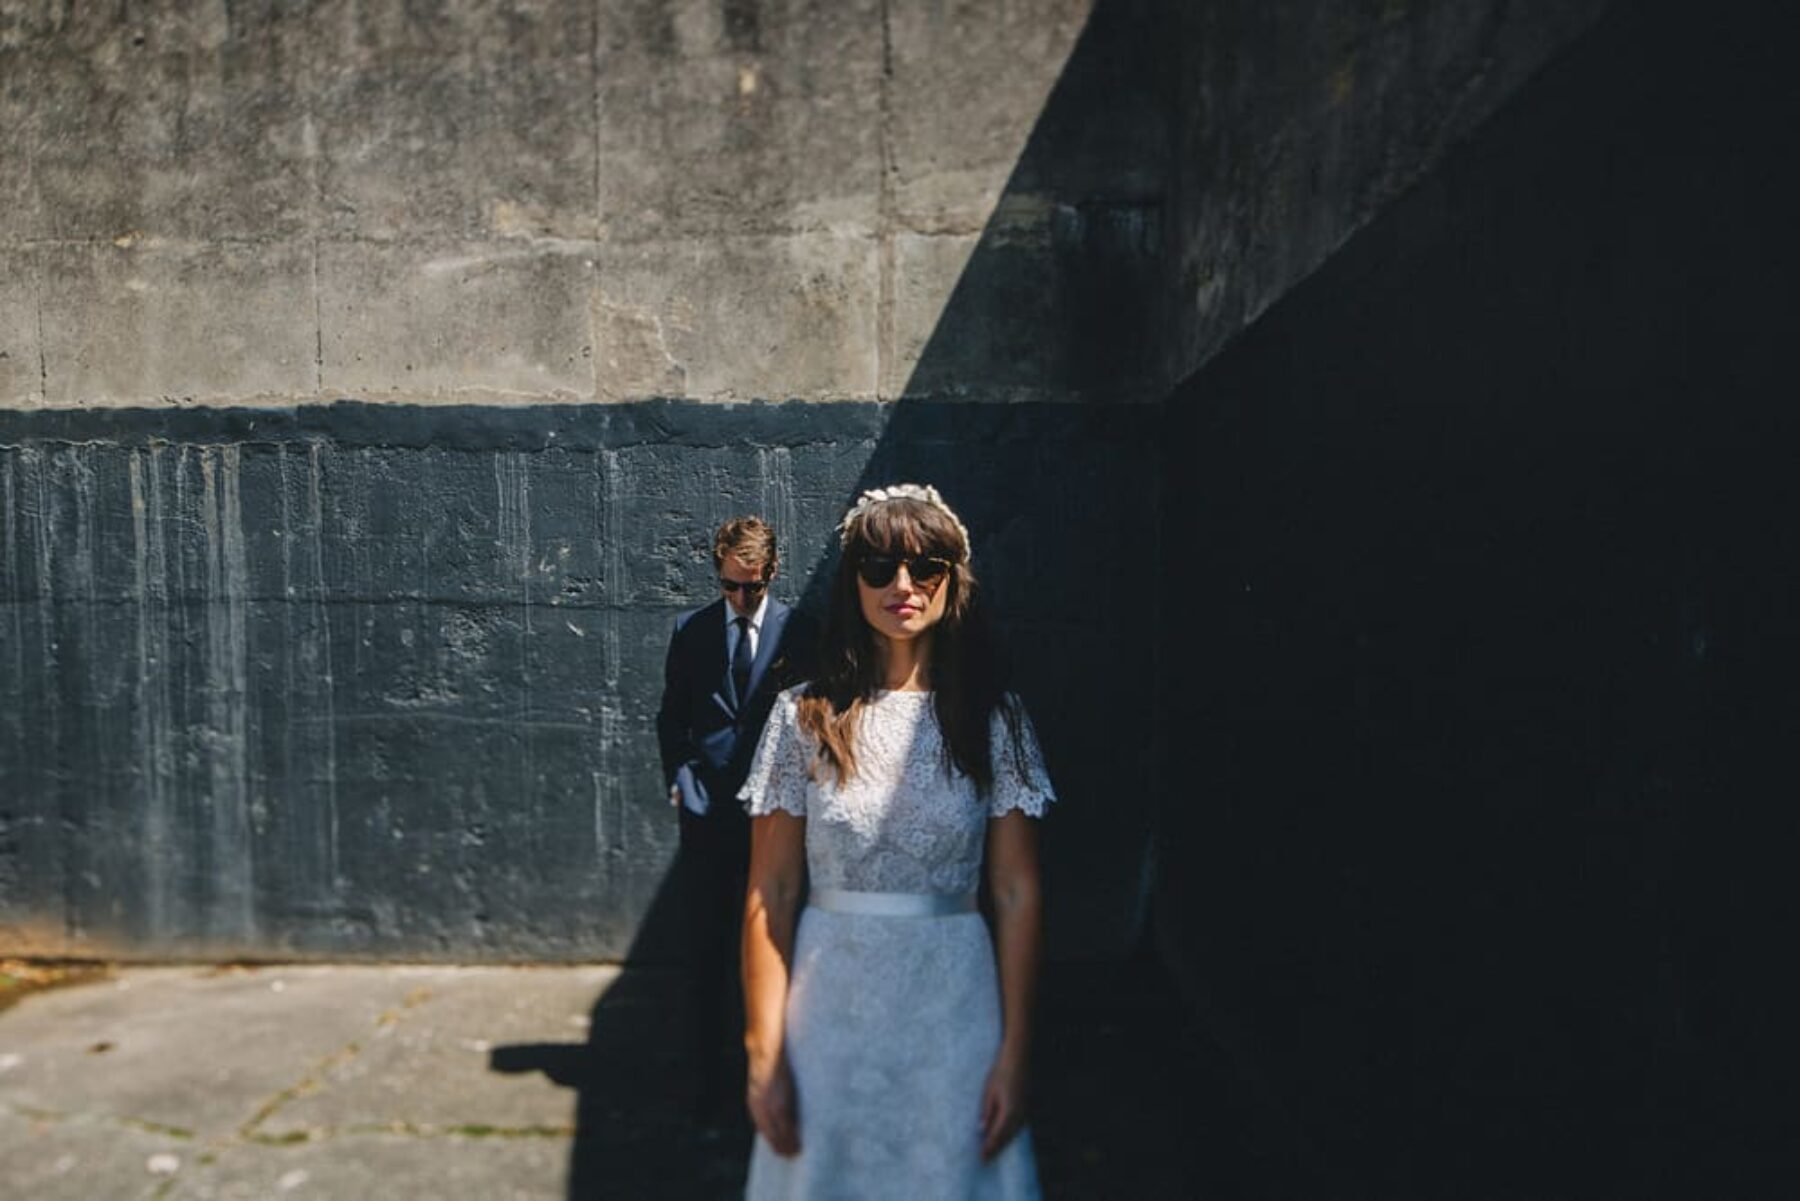 Auckland wedding - photography by Bayly & Moore